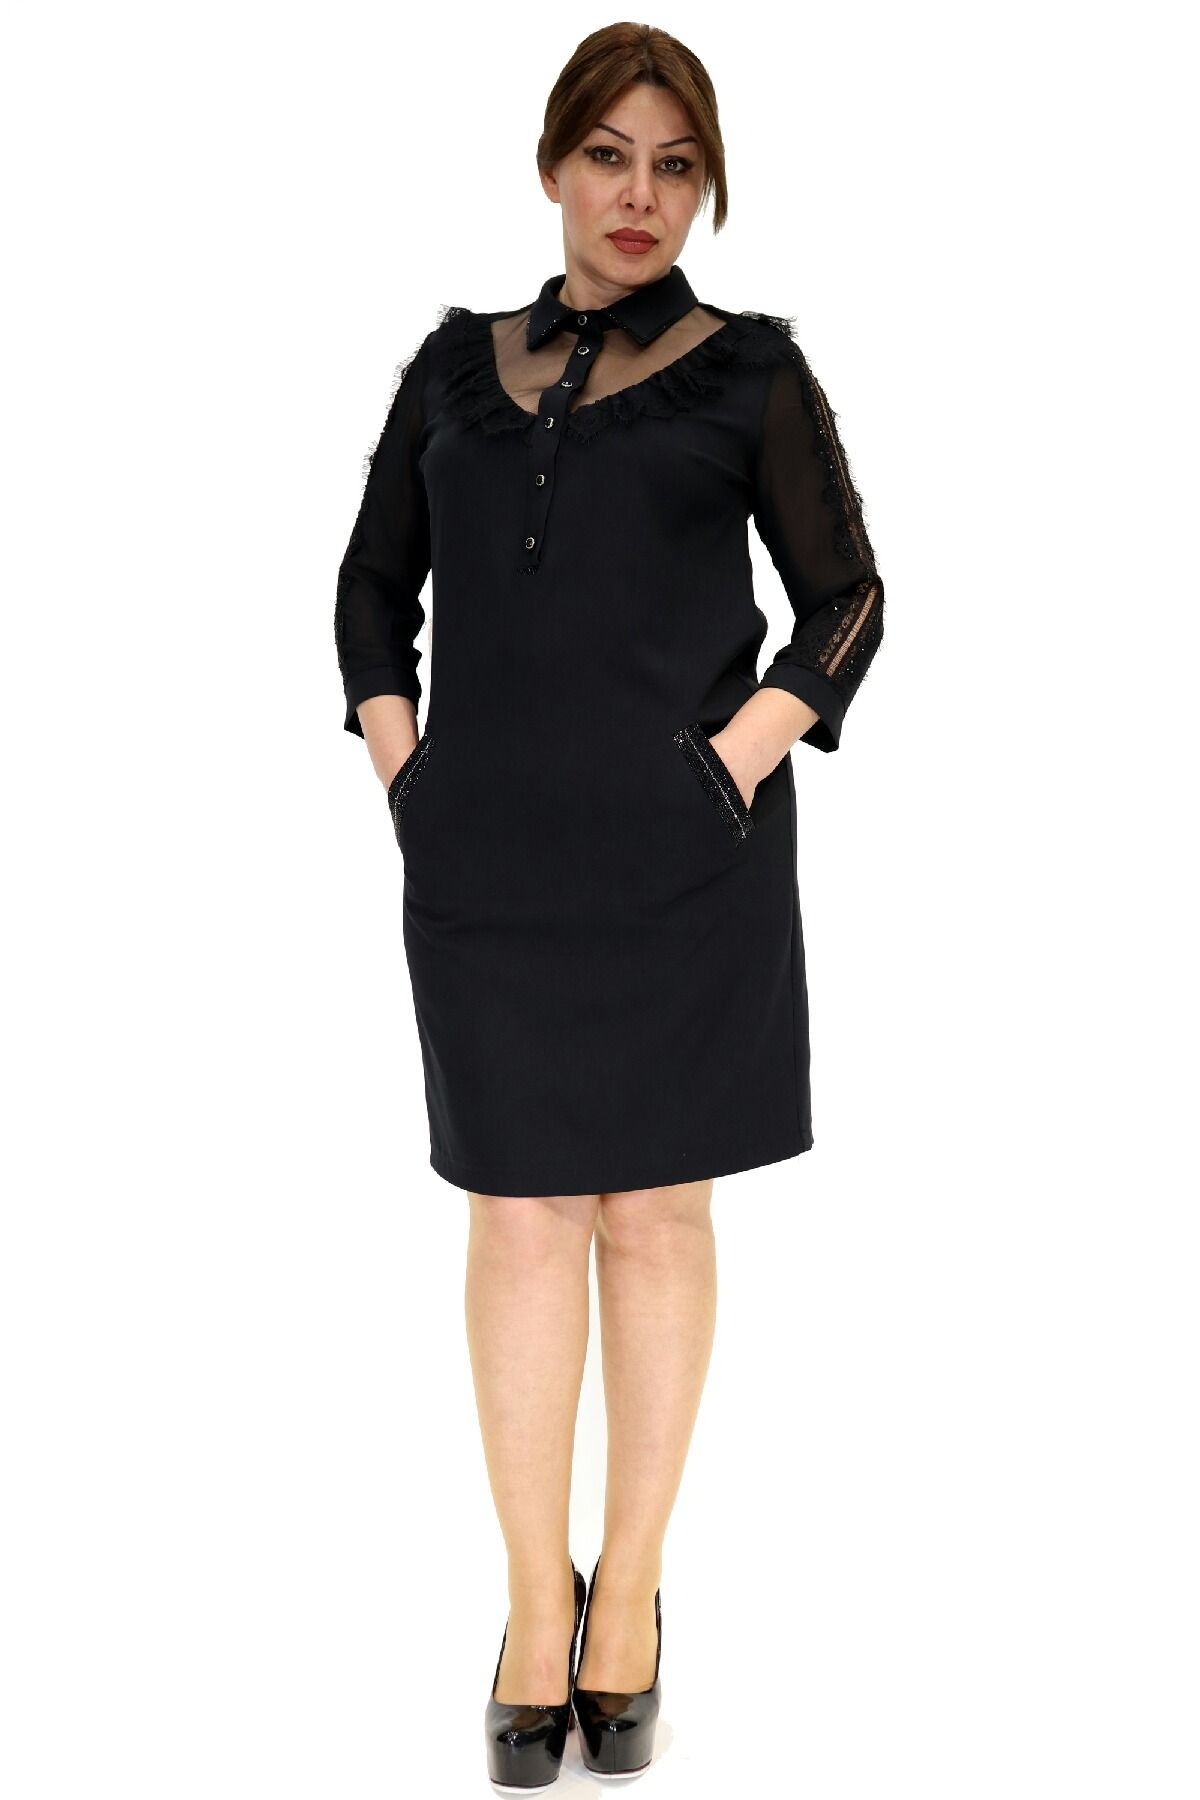 Straight-cut dress with lacy stones neckline and long sleeves and pockets